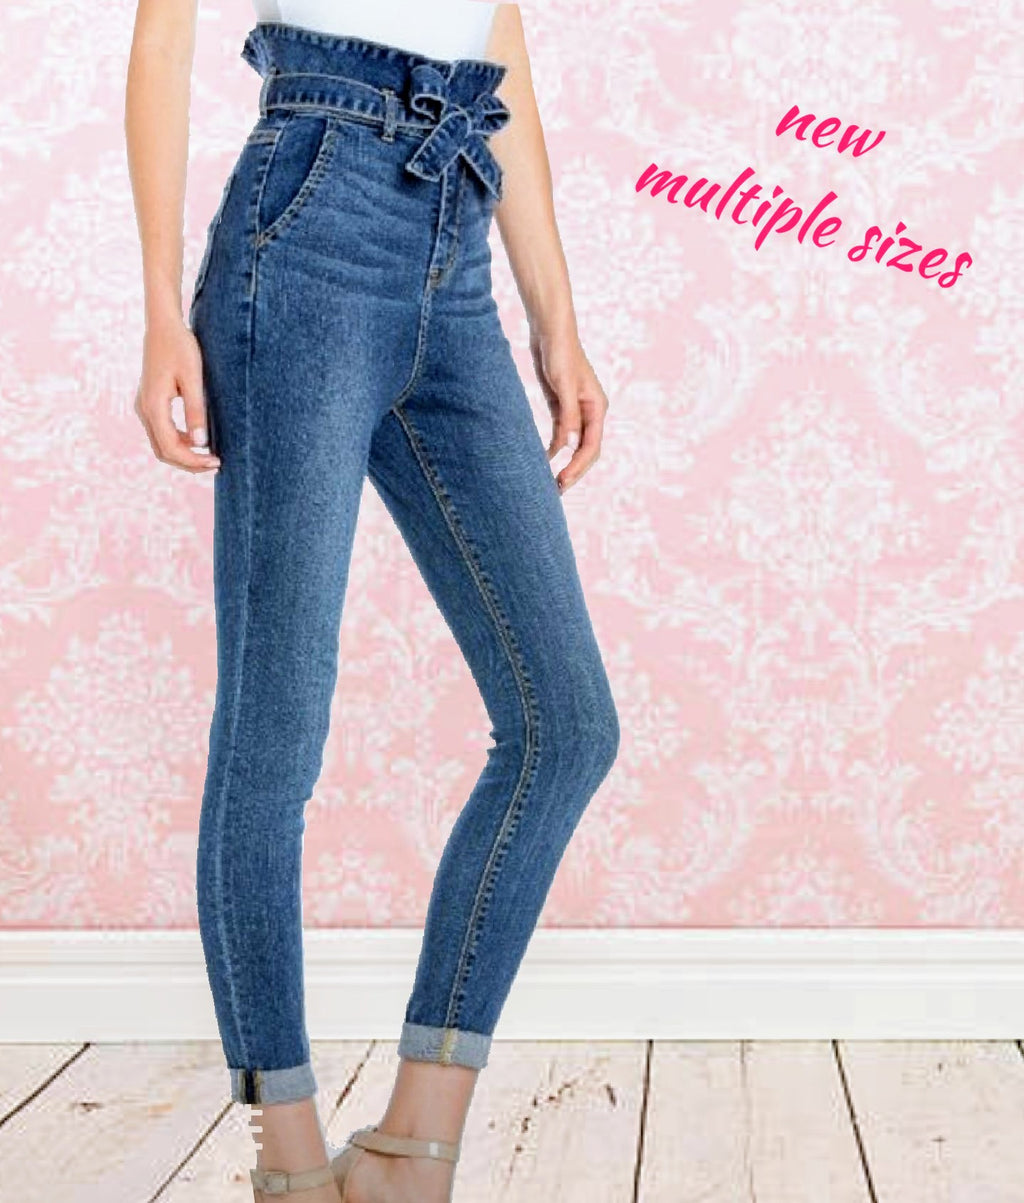 Cello  jeans - so cute and versatile! ( many sizes avail).